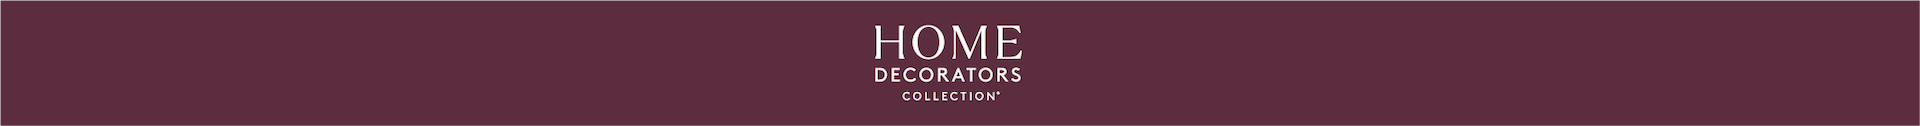 Home Decorators Collection Banner